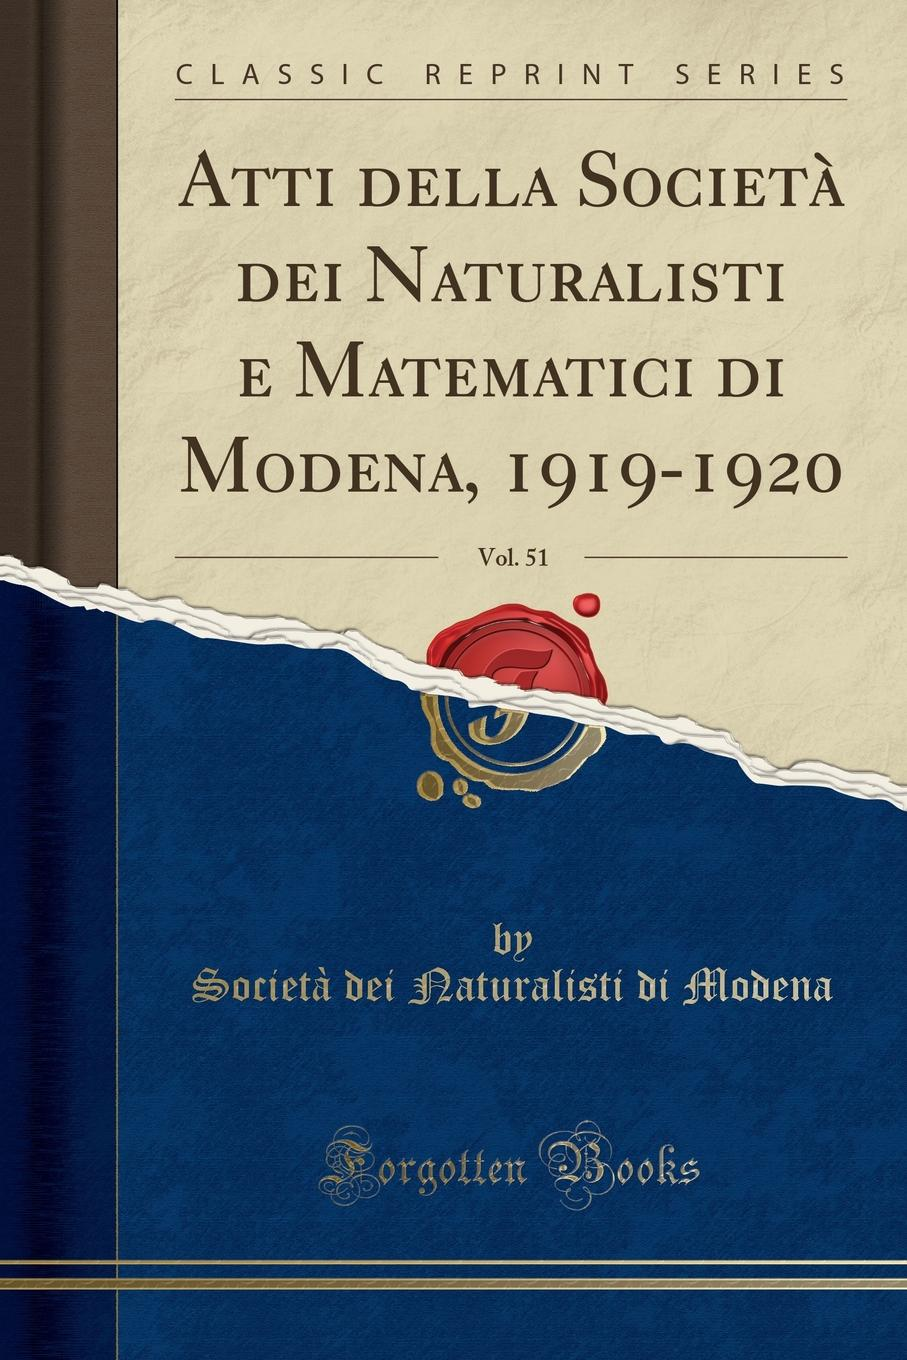 Società dei Naturalisti di Modena Atti della Societa dei Naturalisti e Matematici di Modena, 1919-1920, Vol. 51 (Classic Reprint) school buildings construction and design manual